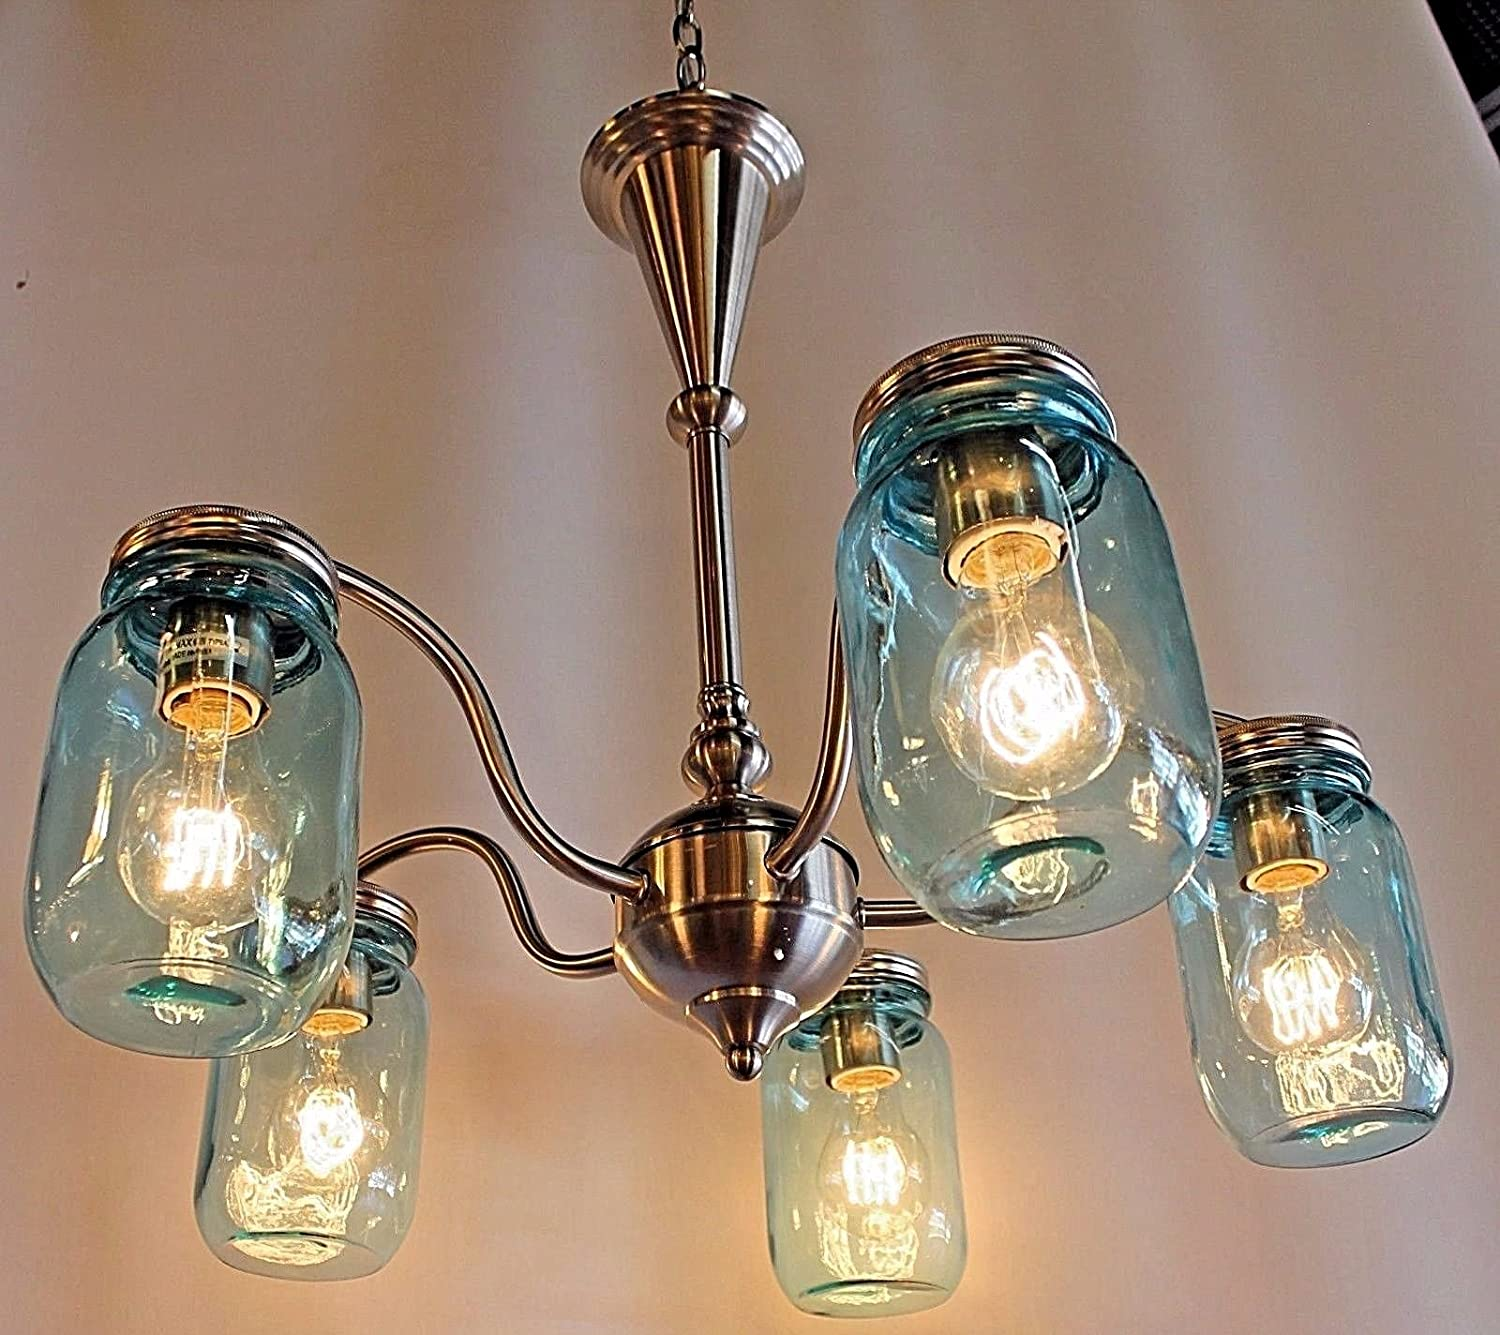 bulb white chandelier house remarkable with light chandeliers glass modern designs photos crystal iron silver and lamp plans